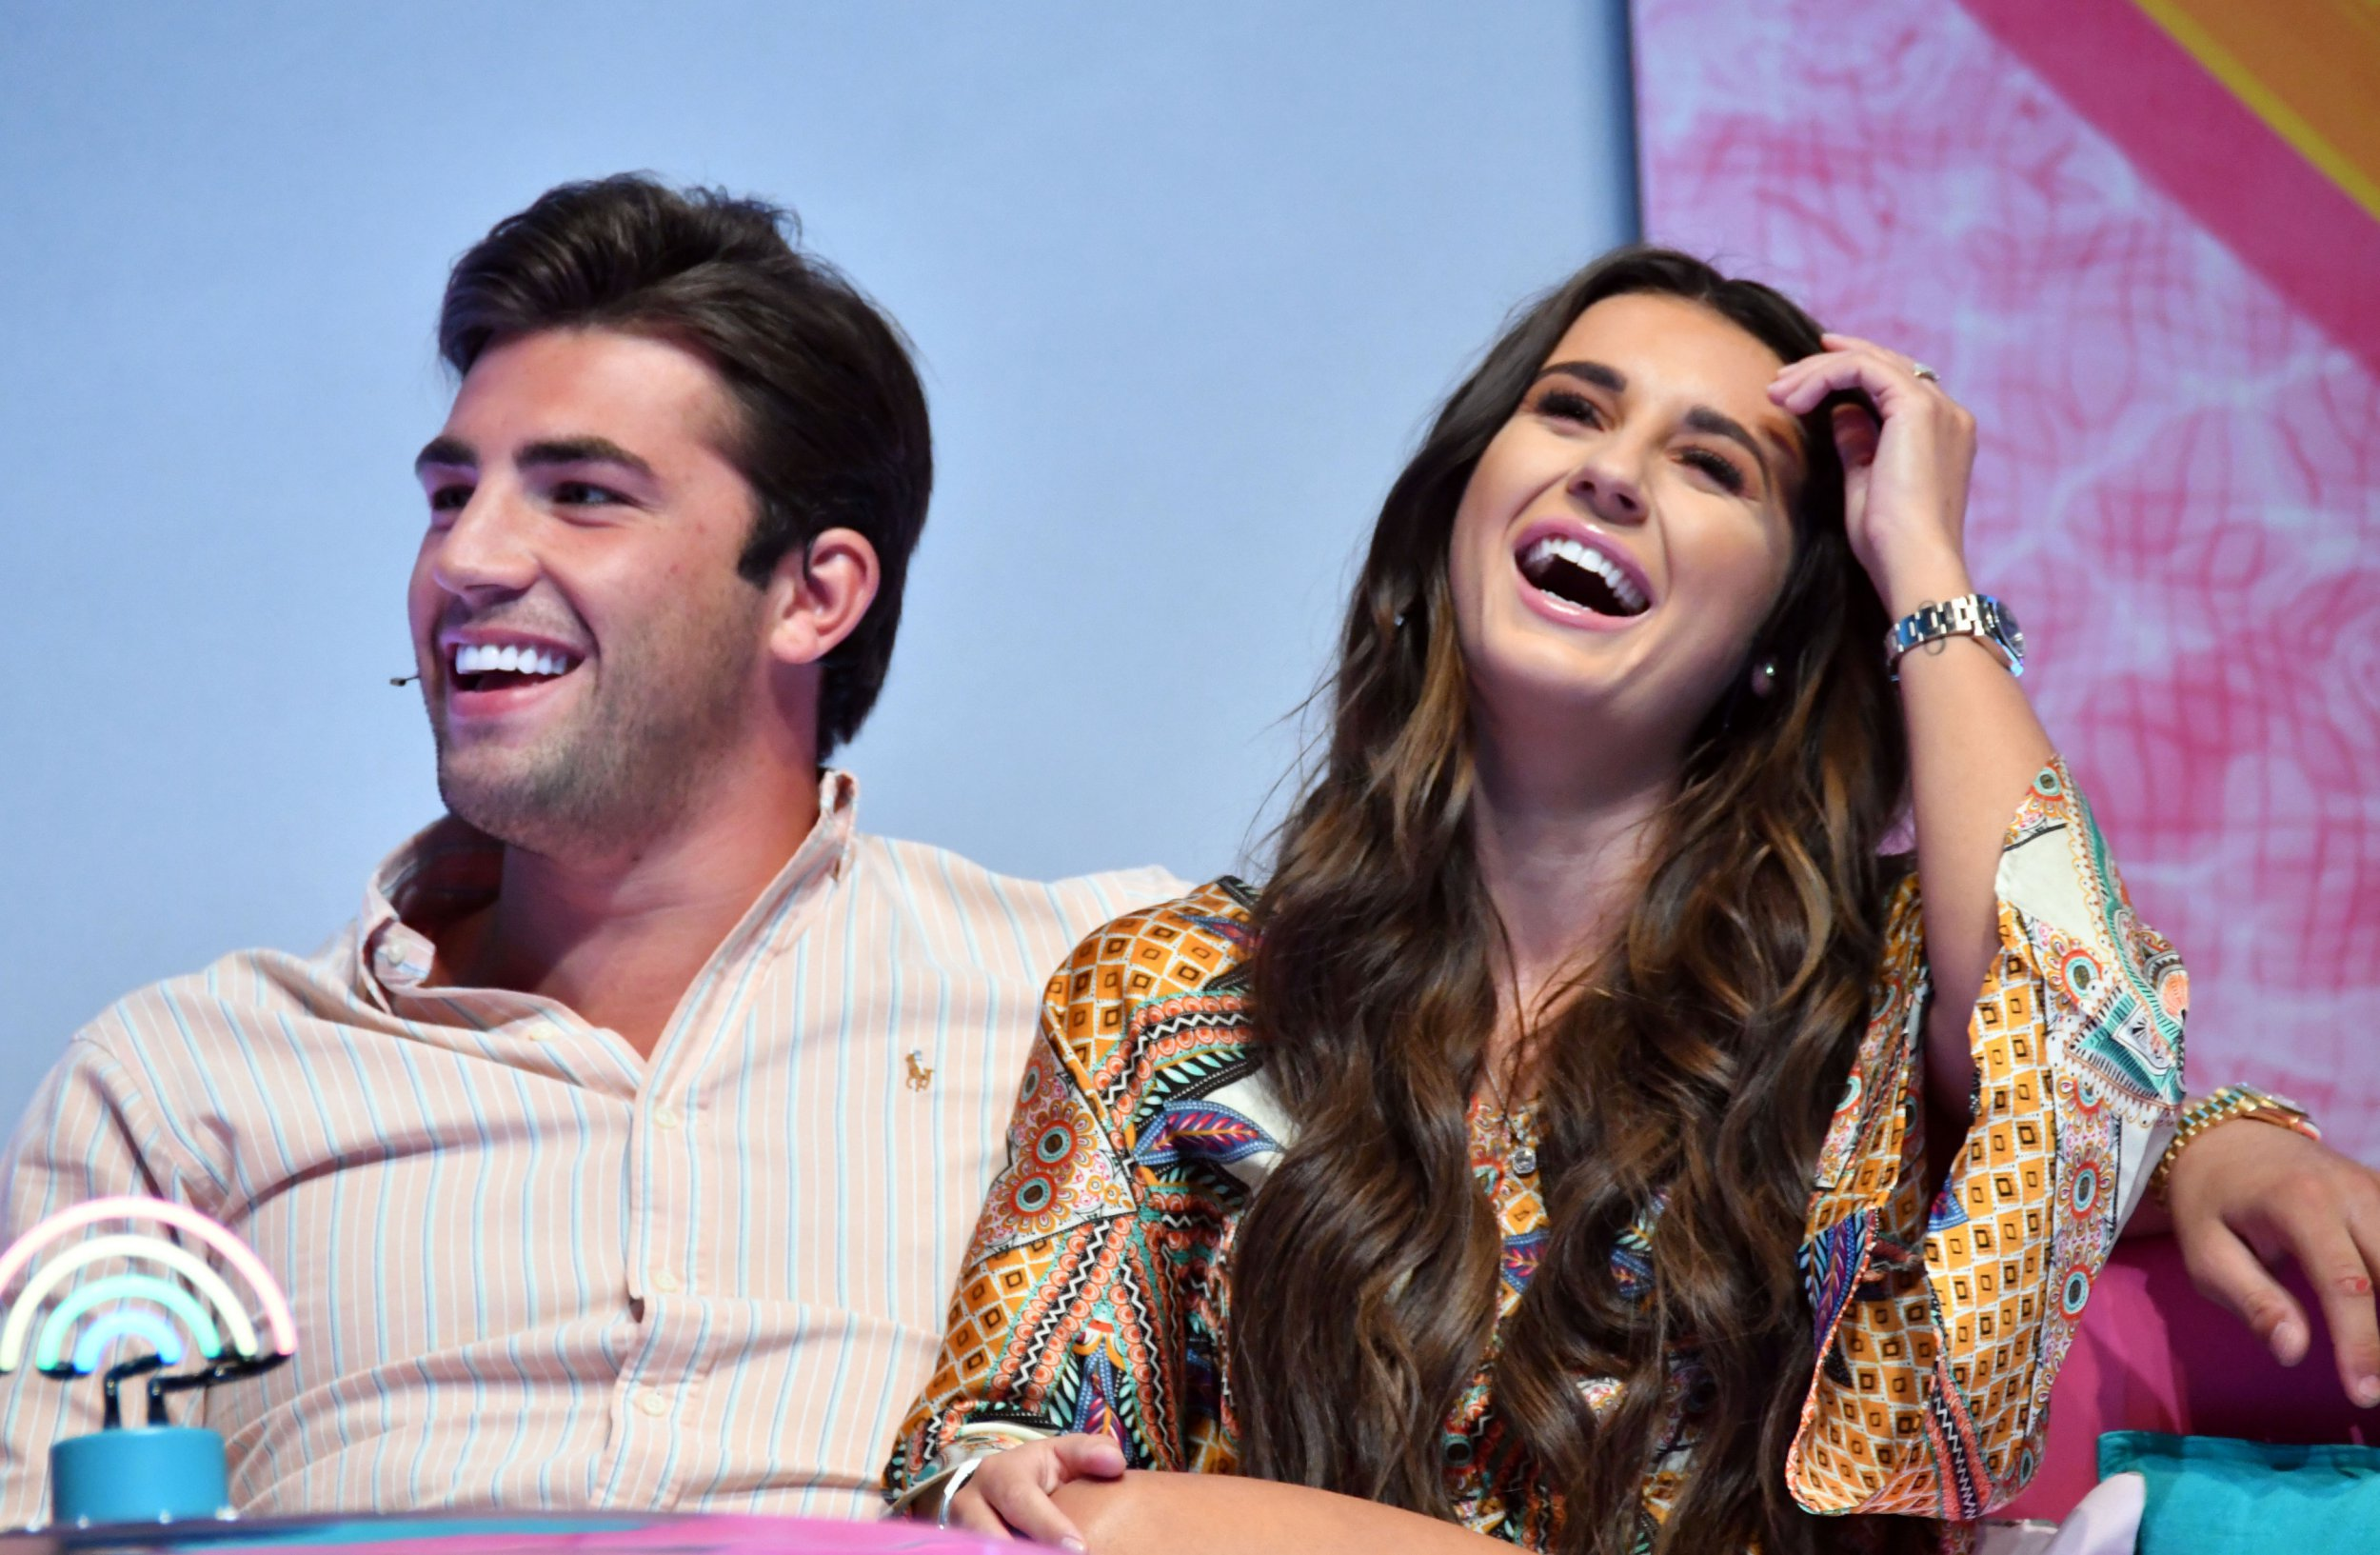 dani dyer and jack fincham from love island laughing together